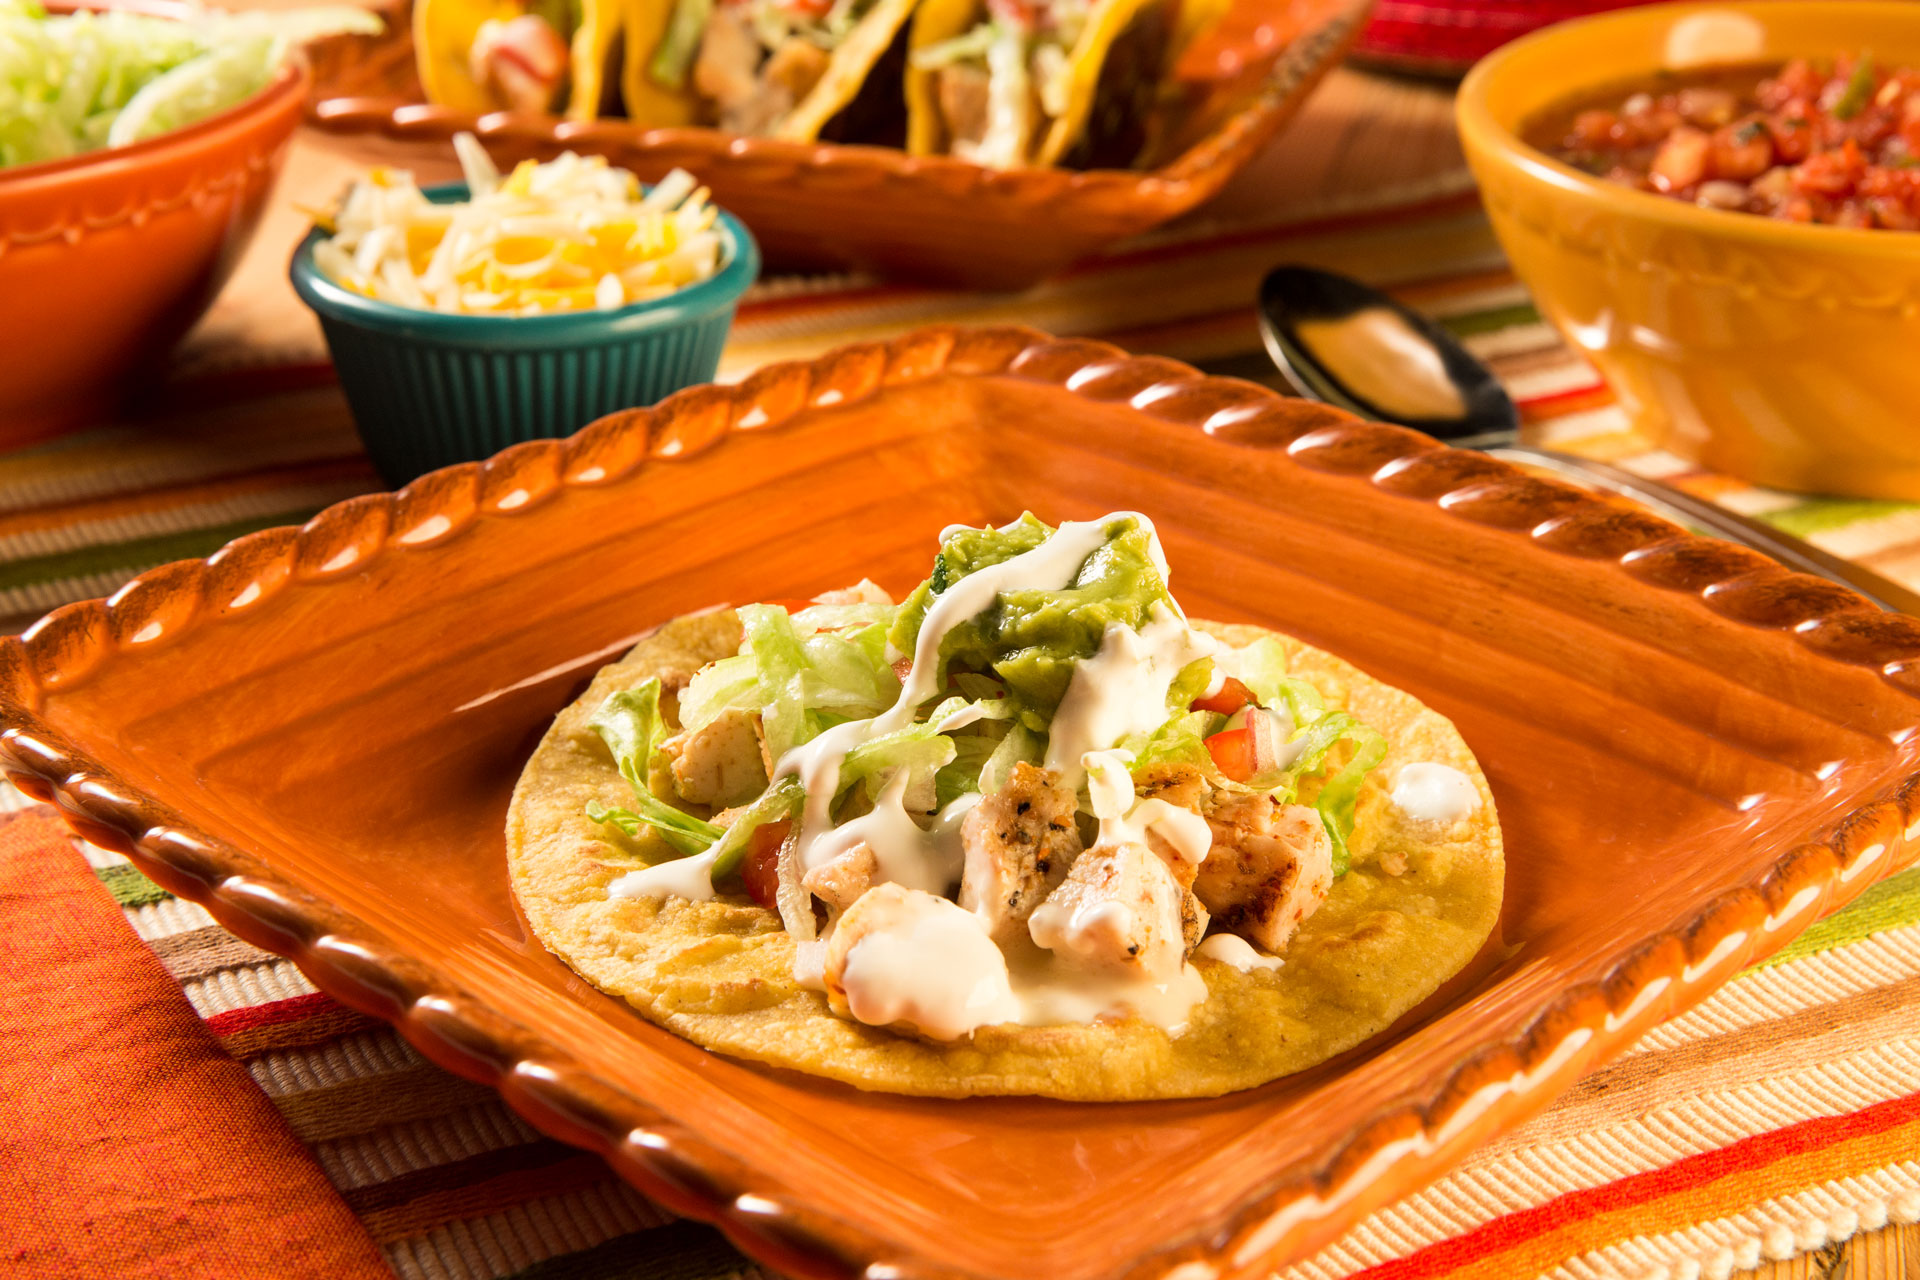 Perfect for a busy night, this fun recipe uses leftover grilled chicken seasoned with Mexican seasoning, topped with white queso sauce and stuffed in a crisp skillet-griddled corn tortilla taco. Taco Tuesdays are anything but boring and a fun way to celebrate with a school-related theme.